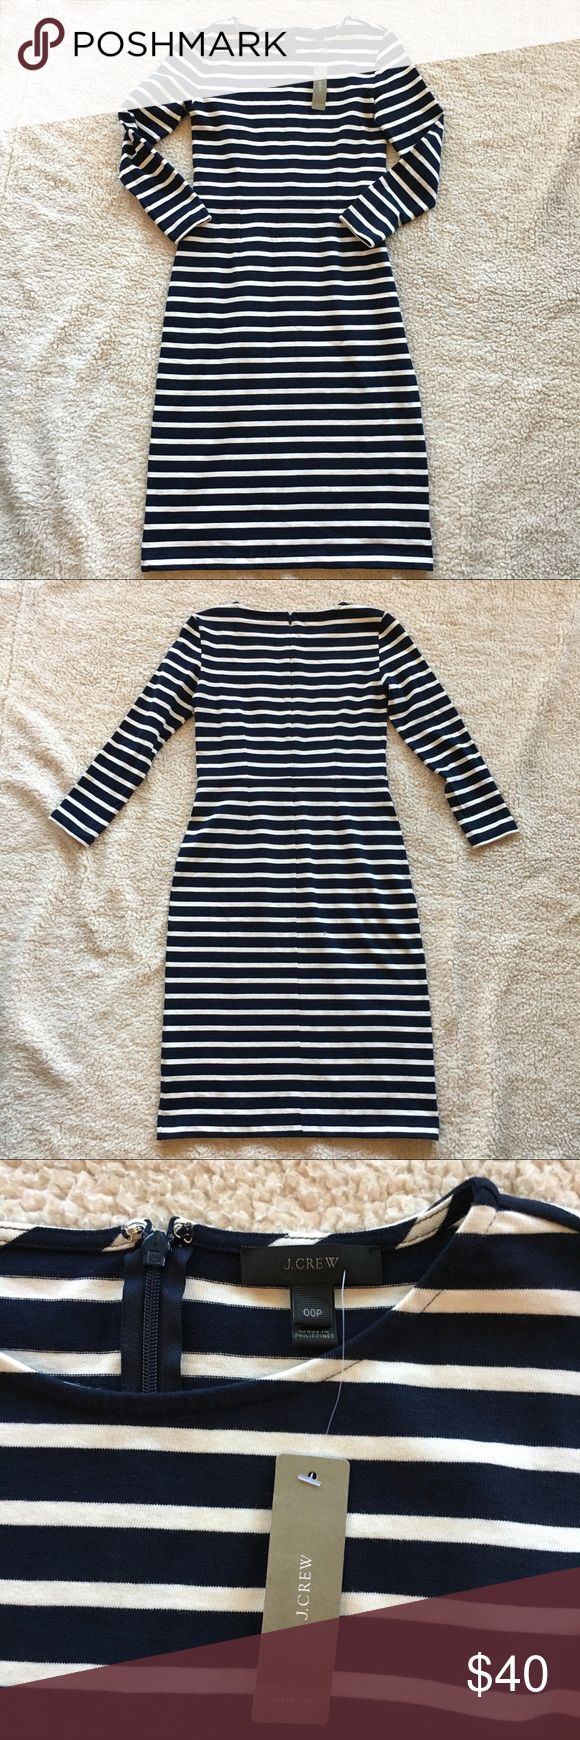 NWT J. Crew Striped Midi Dress, 00P NWT J. Crew Striped Midi Dress in navy and off white with long sleeves and back zipper. Brand new with tag from a smoke-free, pet-free home. No trades. Size: 00 petite J. Crew Dresses Midi